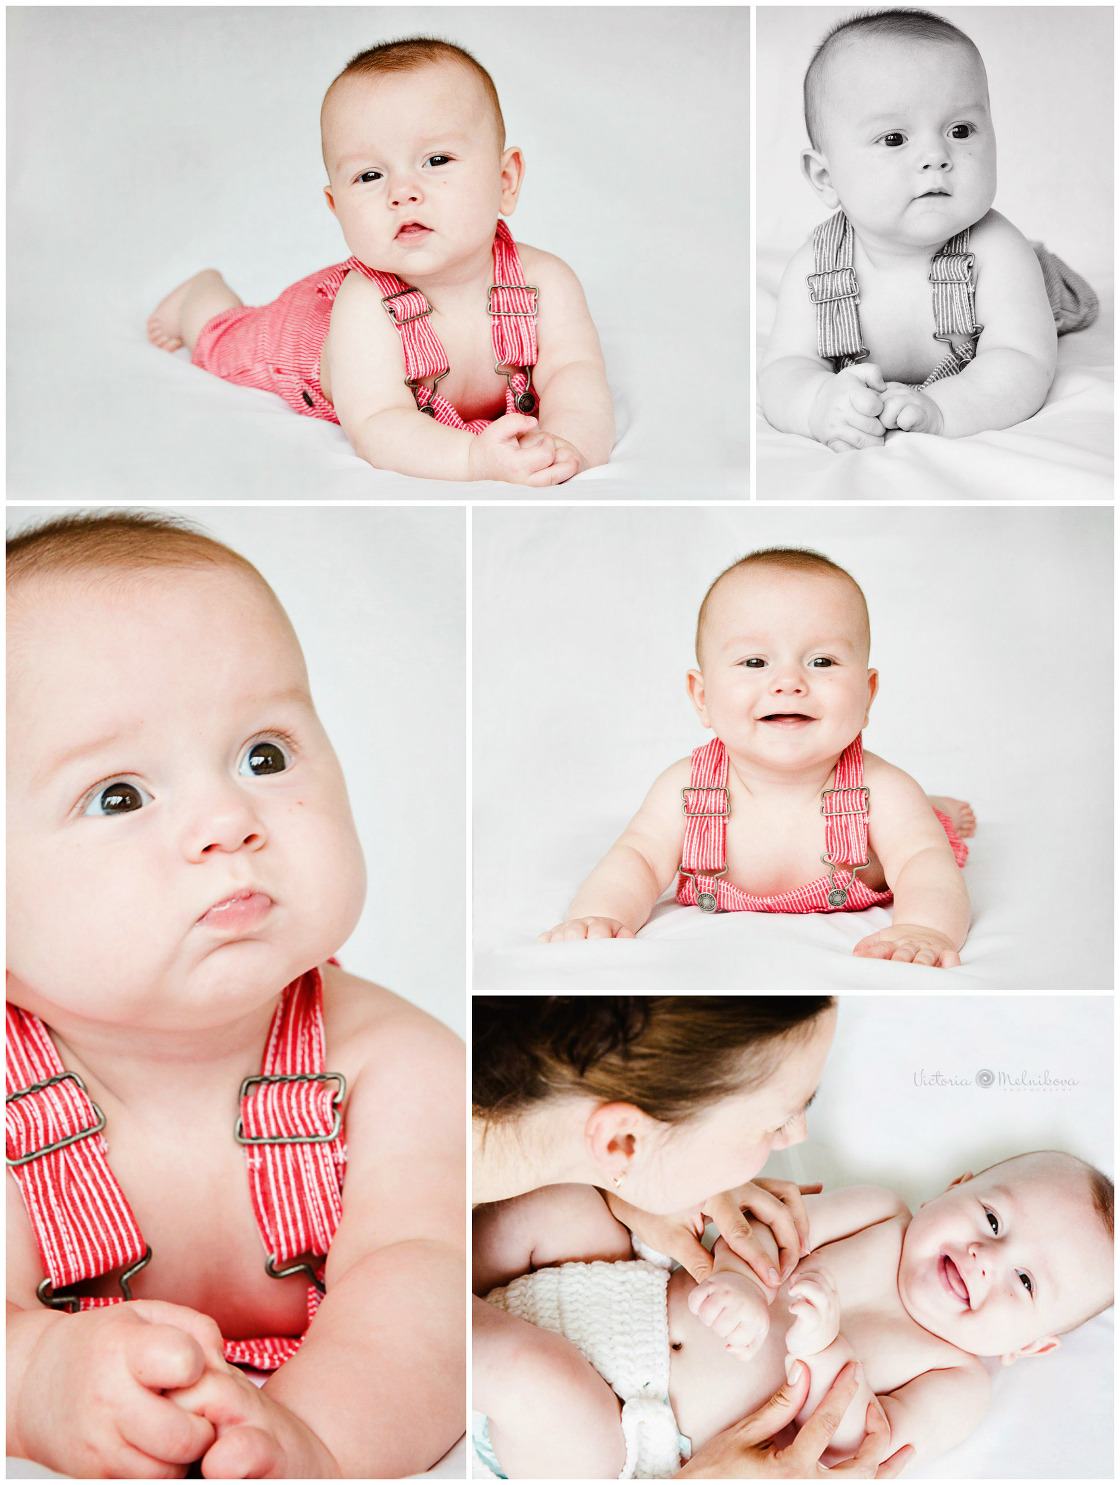 Baby photographer in New Jersey